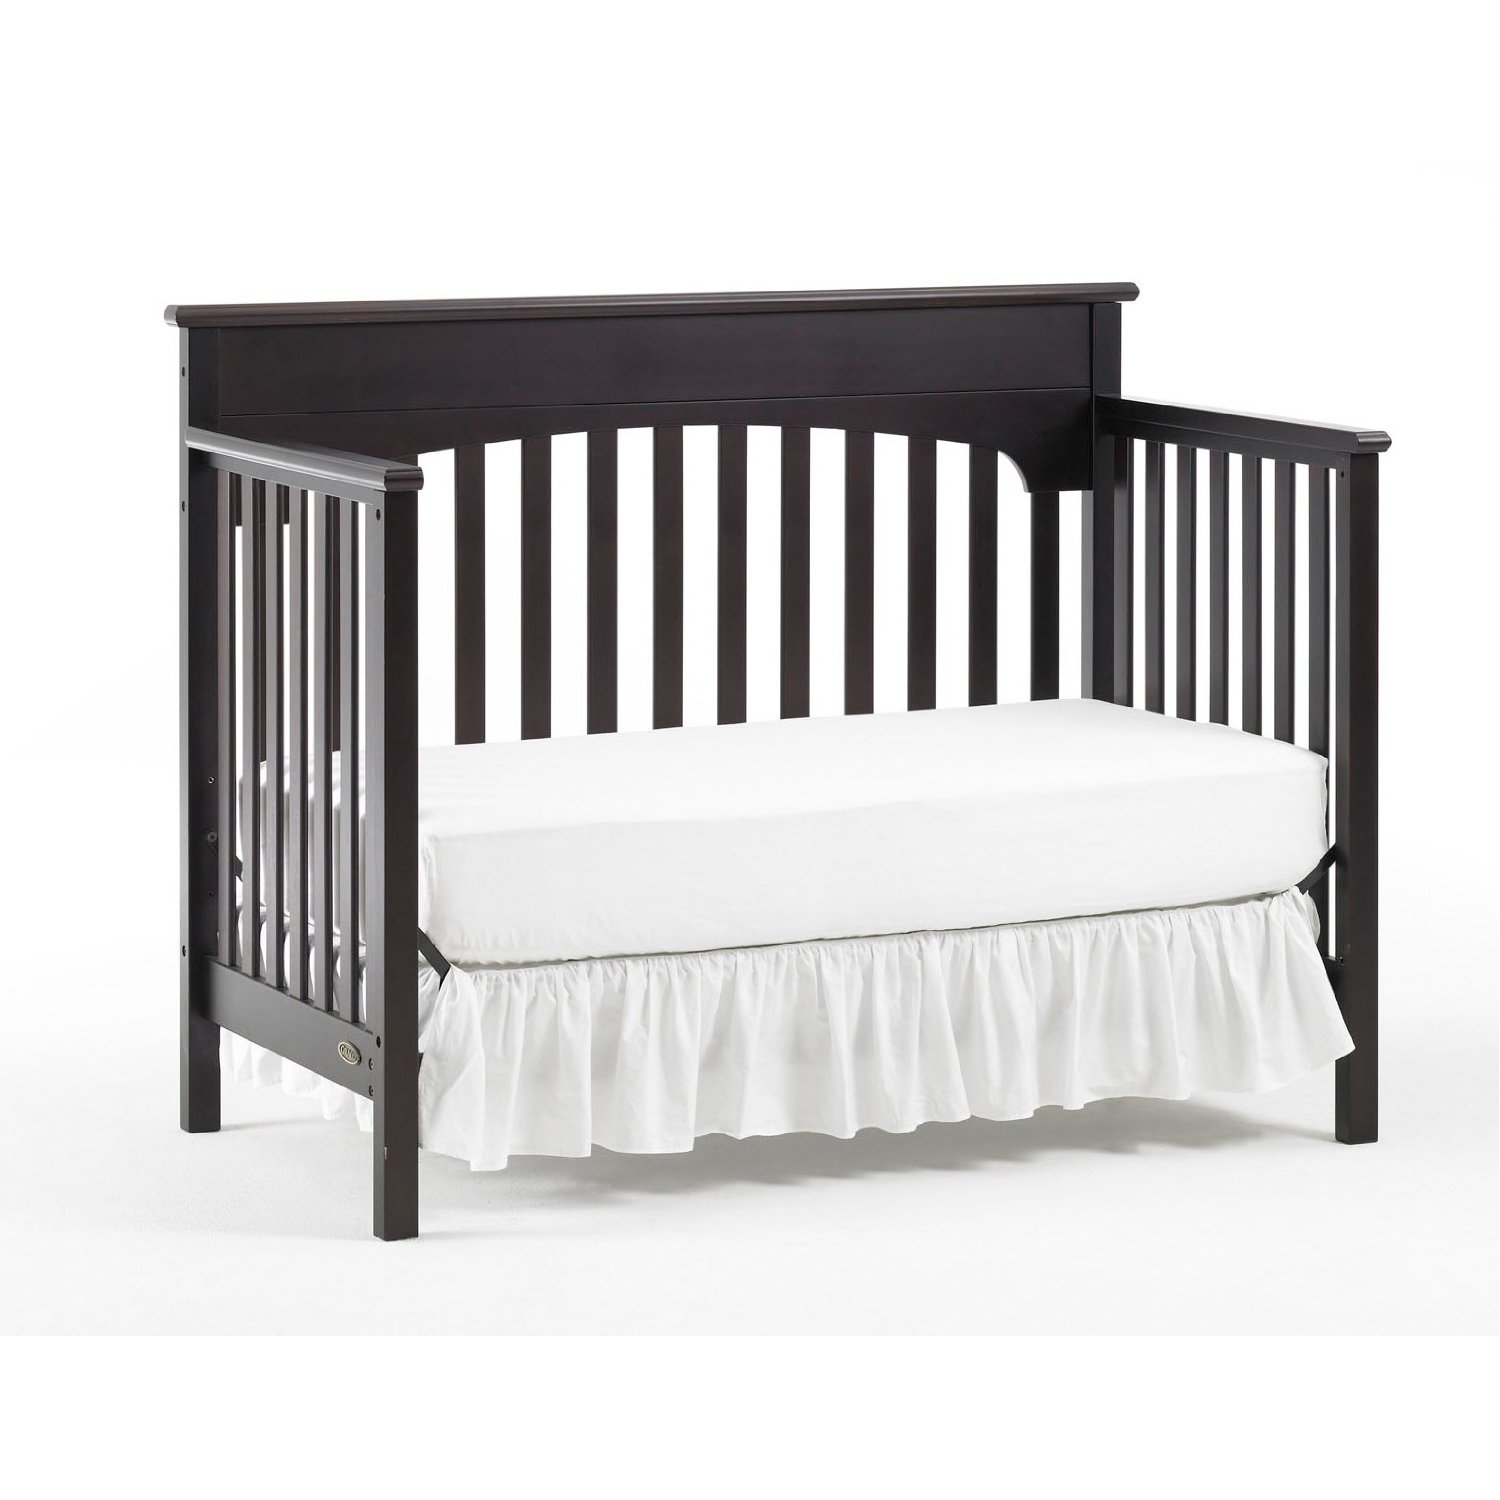 How To Convert Graco Somerset Crib To Toddler Bed